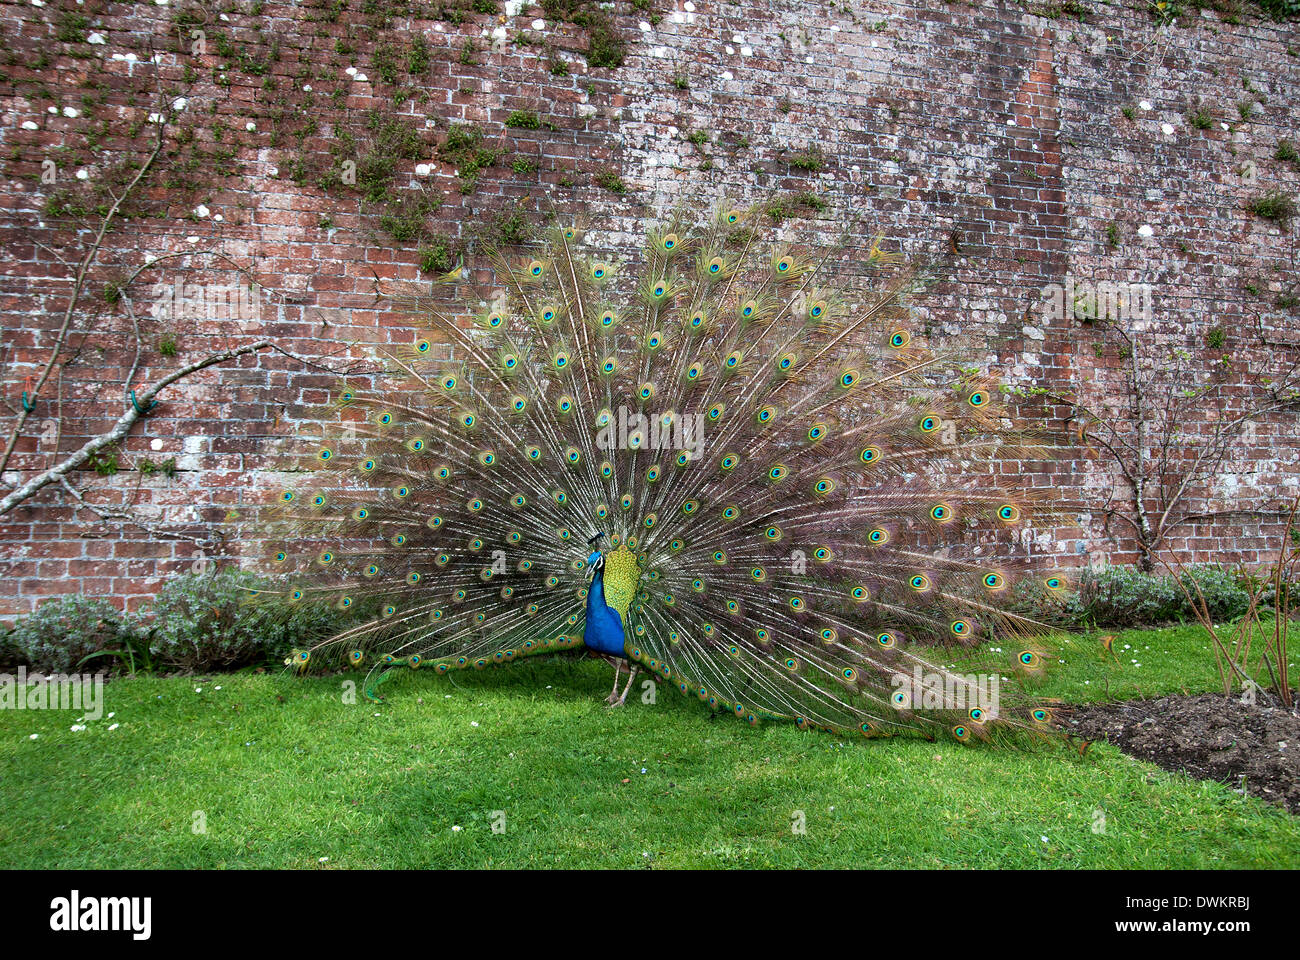 male peacock displaying tail feathers - Stock Image